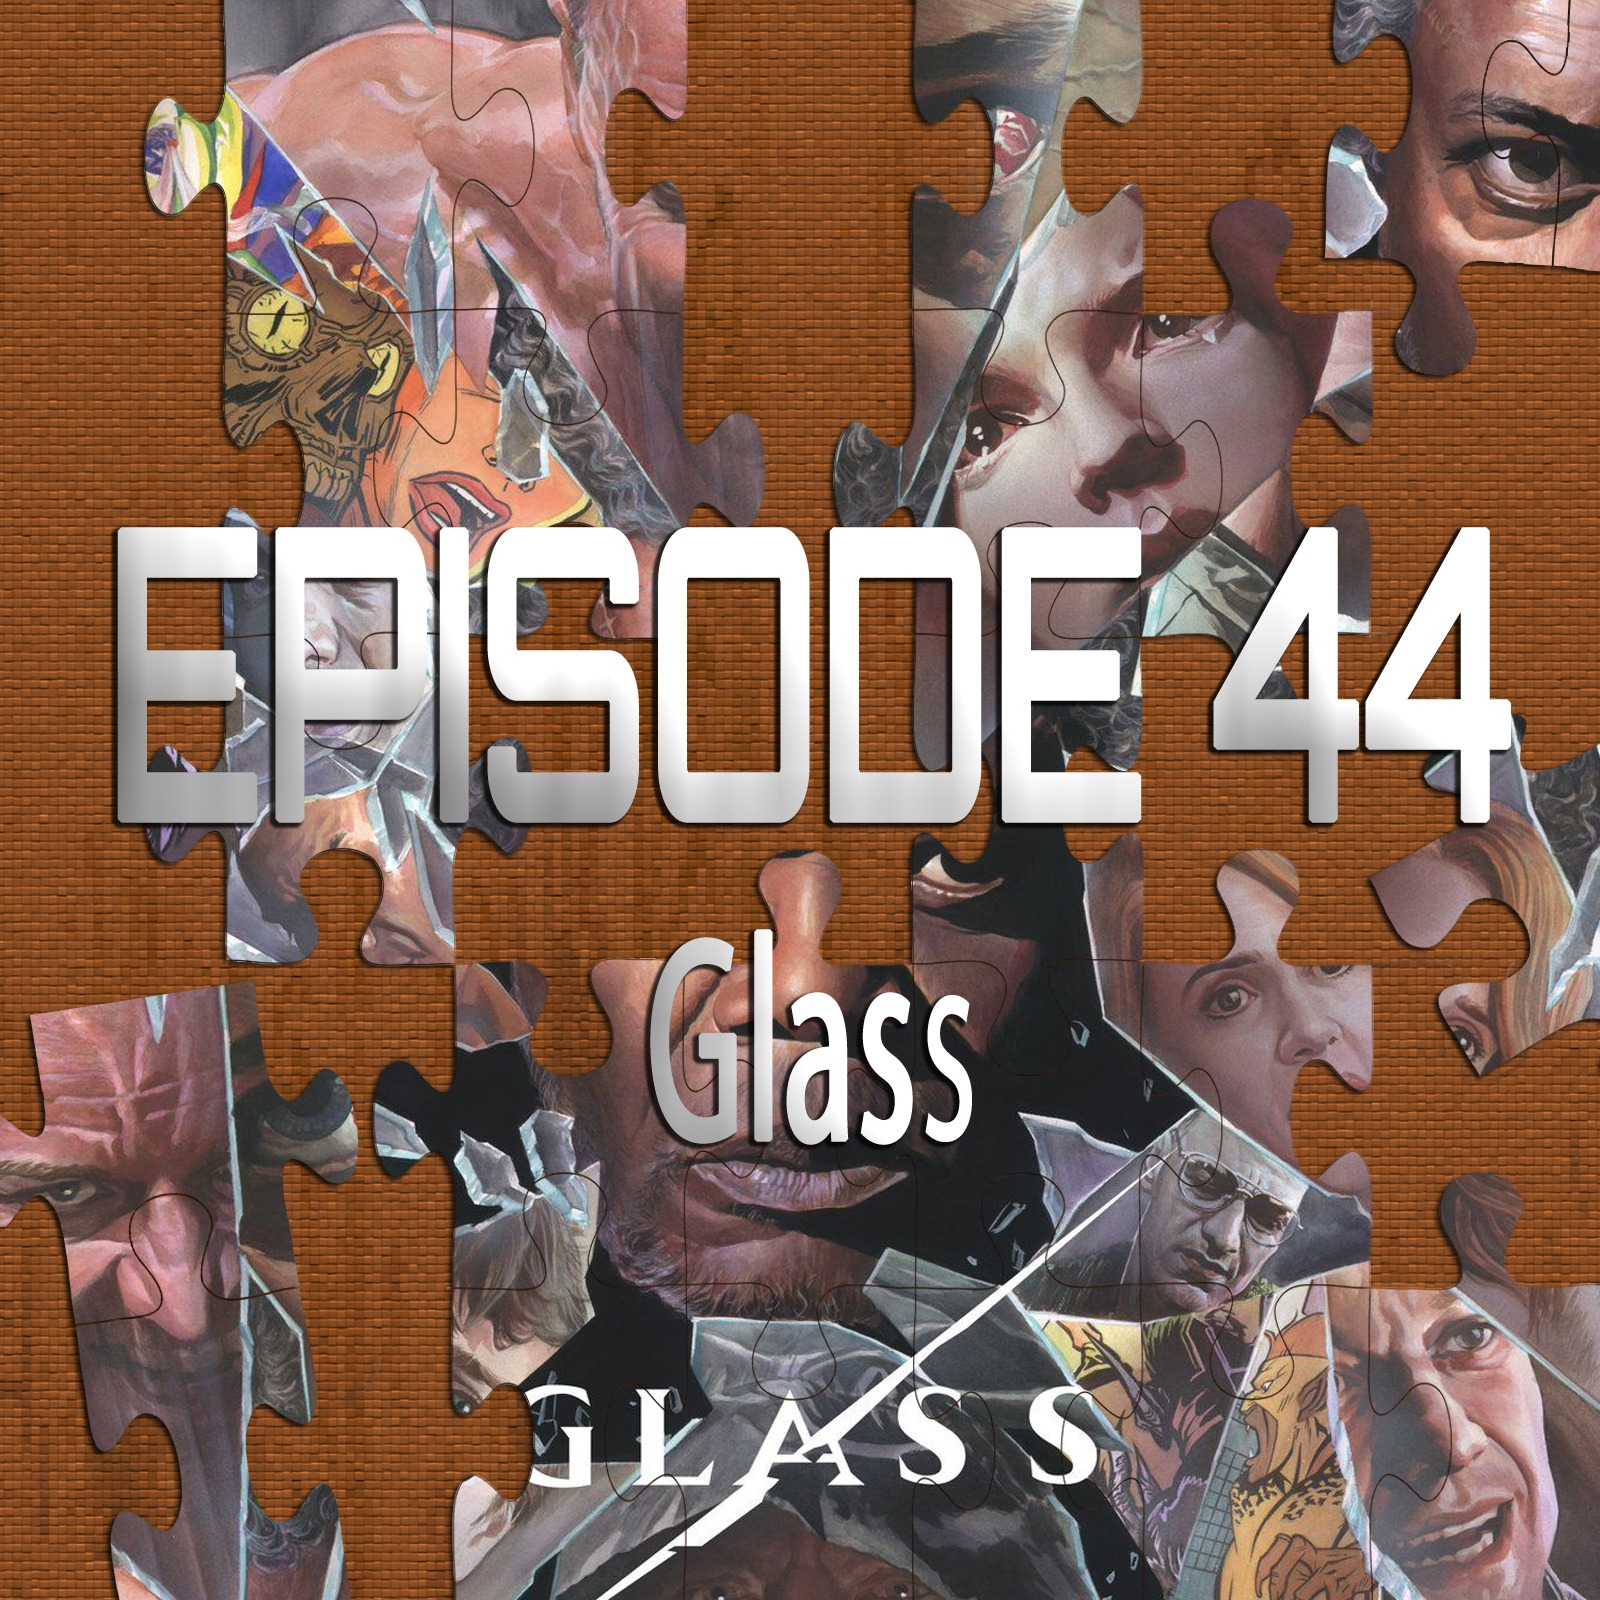 Glass (Featuring Chad Clinton Freeman and Ryan Daugherty)